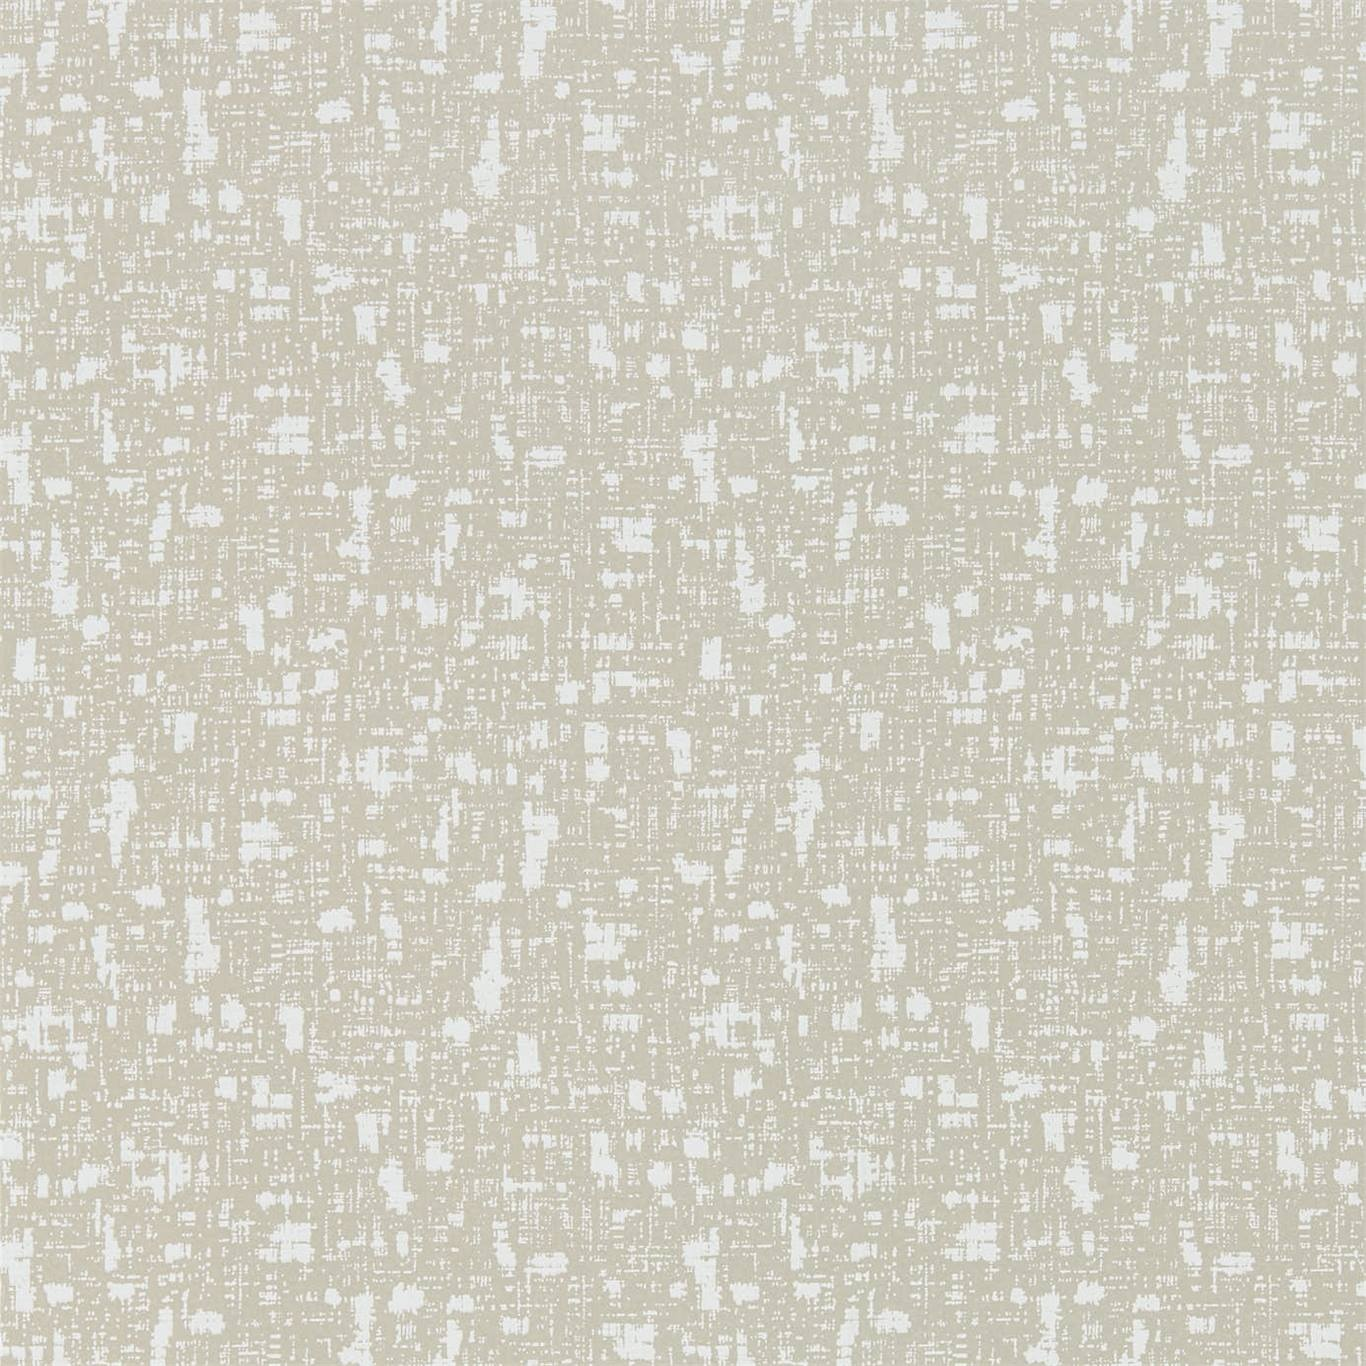 Image of Harlequin Lucette Pearl Wallpaper 111906